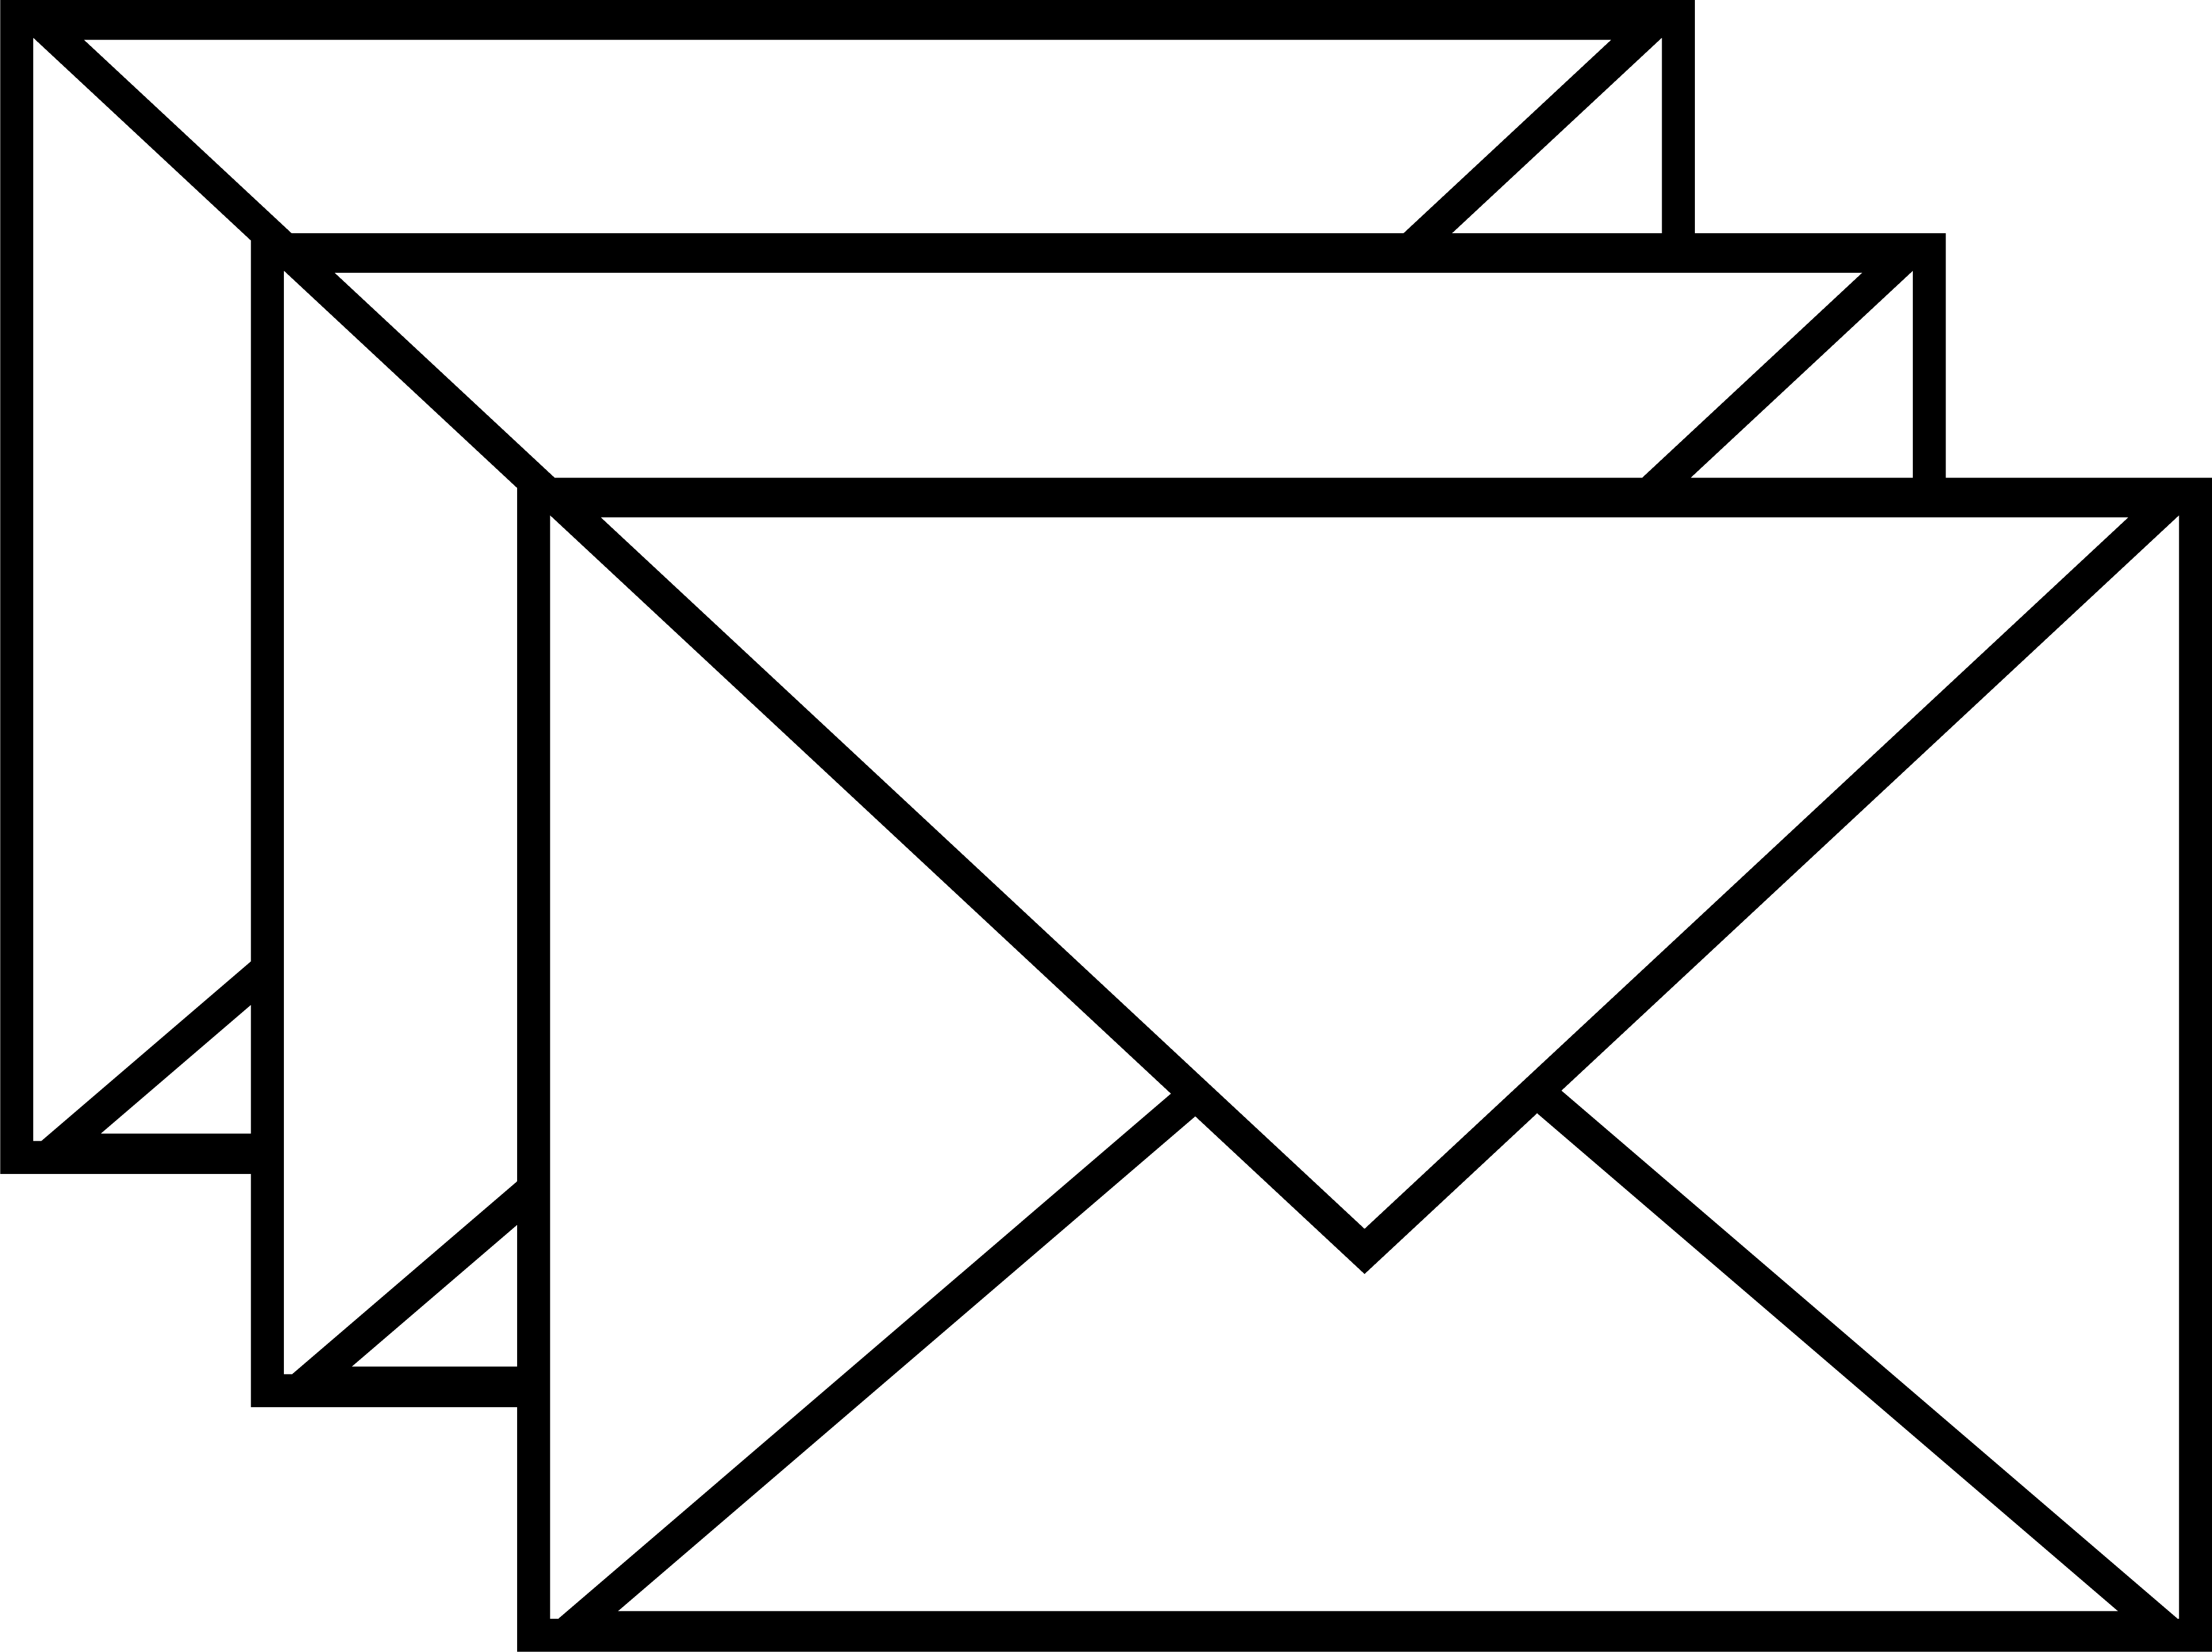 Envelope clipart black and white free images 3